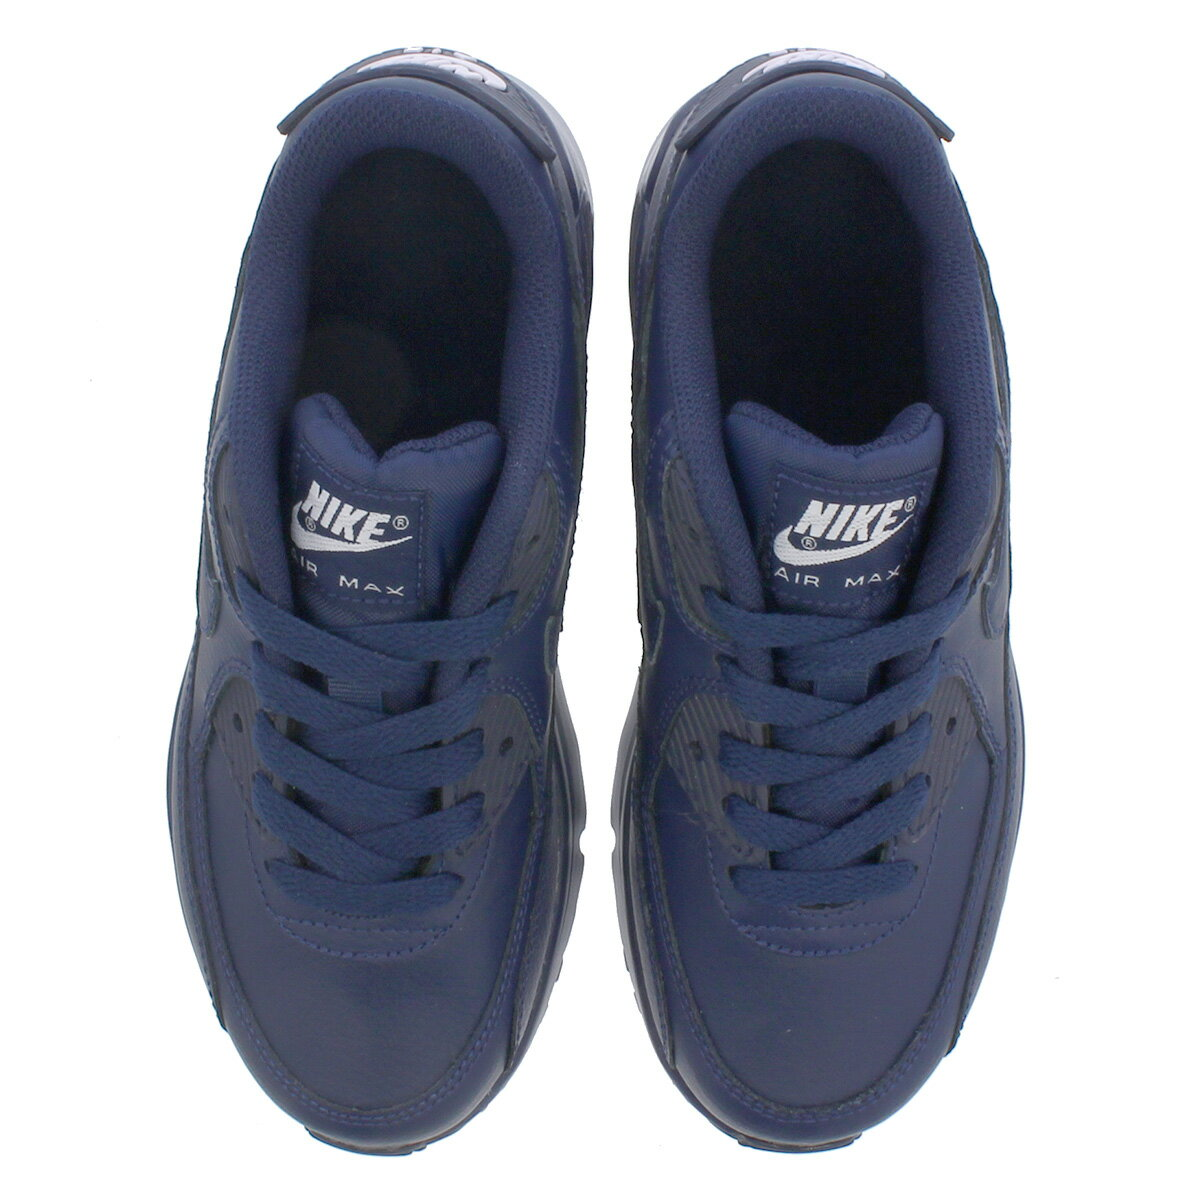 NIKE AIR MAX 90 LTR PS Kie Ney AMAX 90 leather PS MIDNIGHT NAVYWHITE 833,414 412